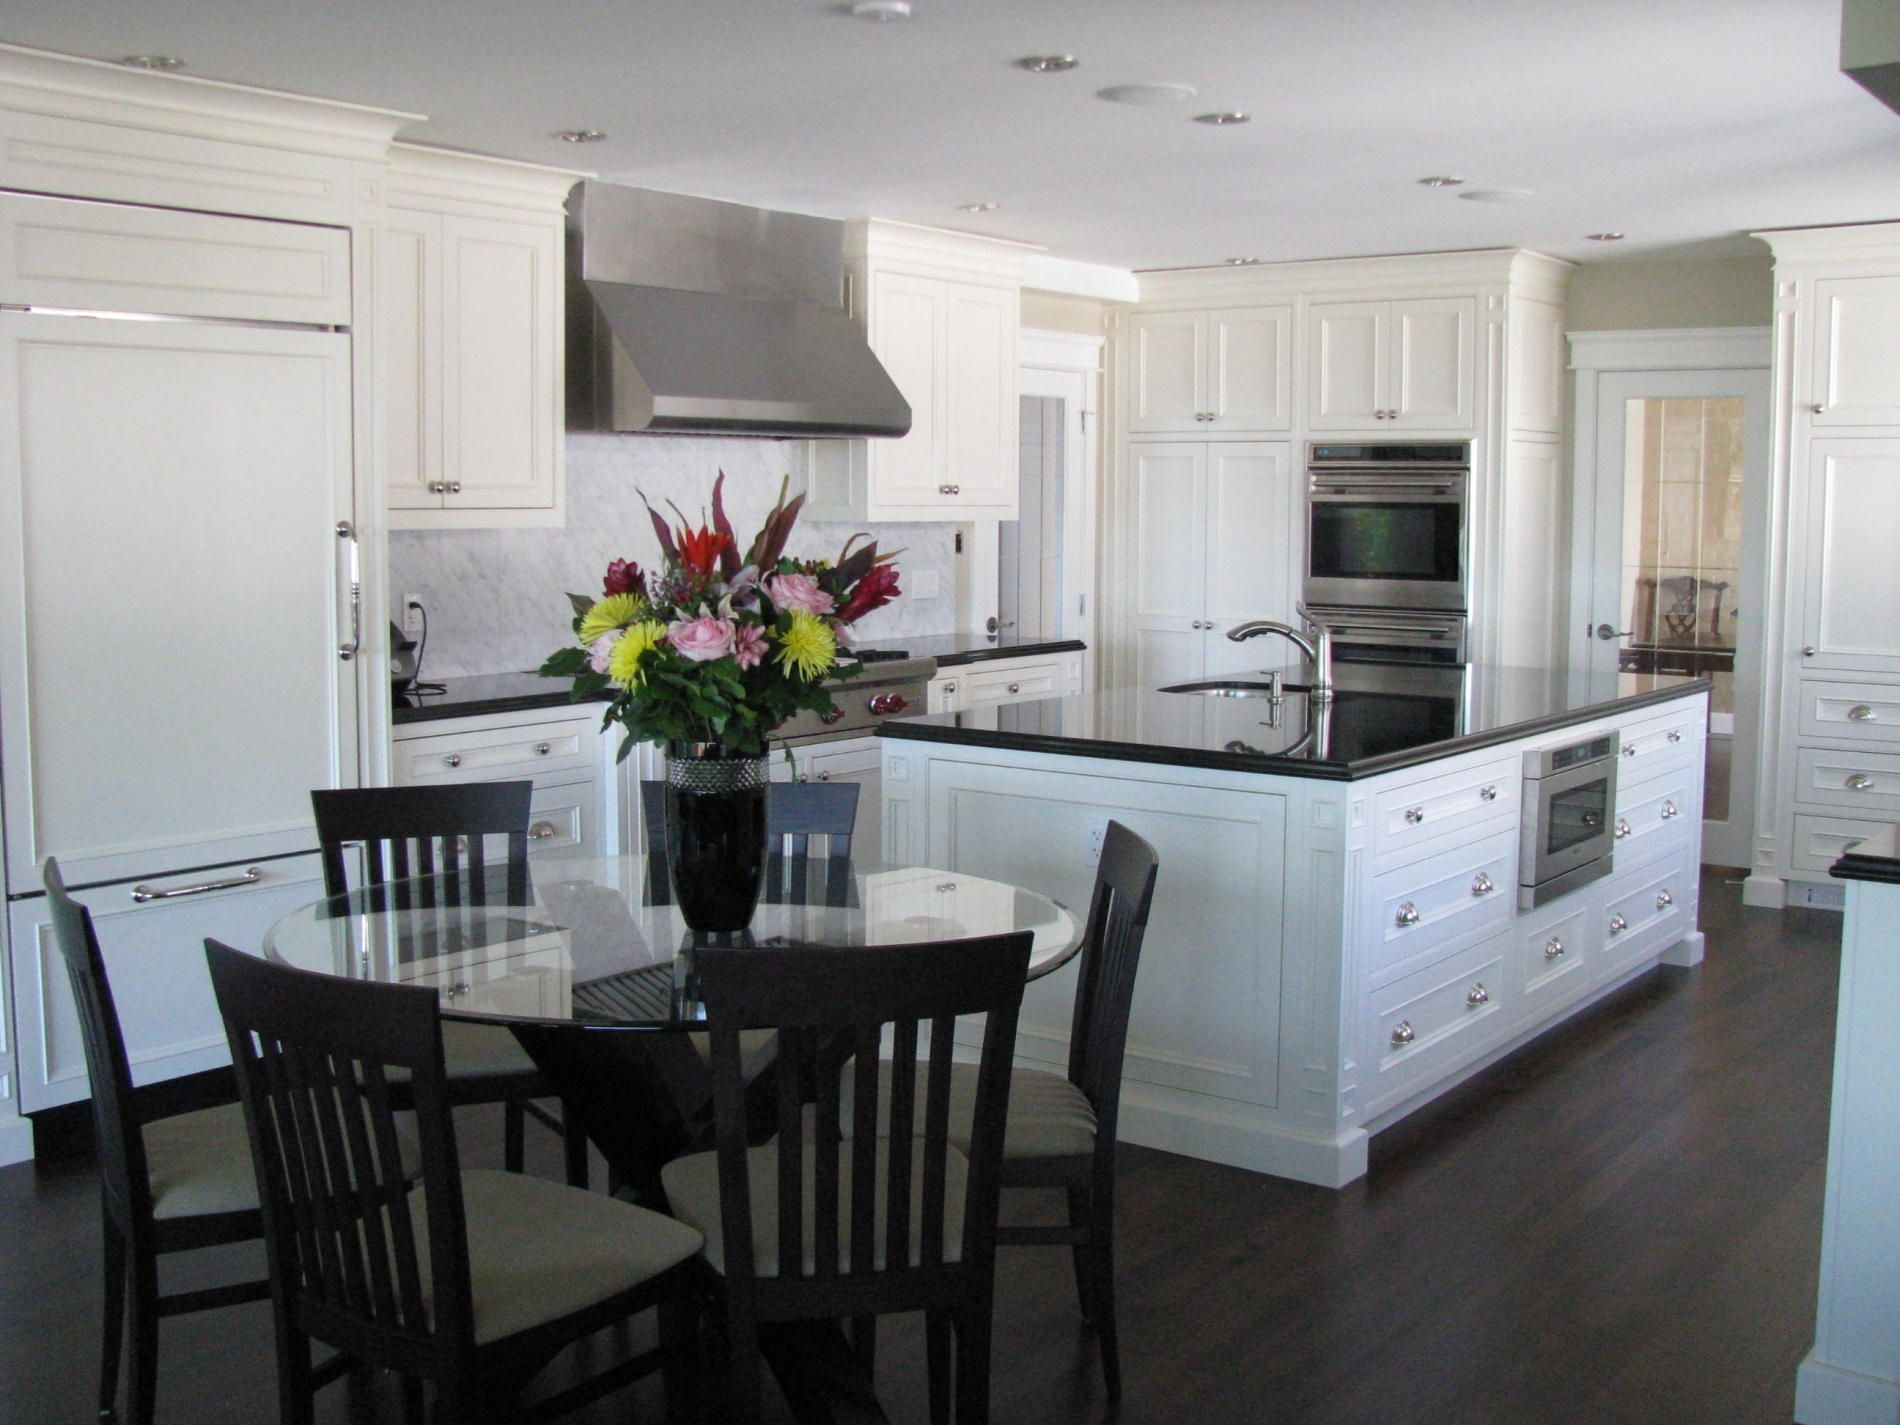 White Kitchen Countertops  Projects To Try  Pinterest Delectable Black And White Kitchens Designs Decorating Design